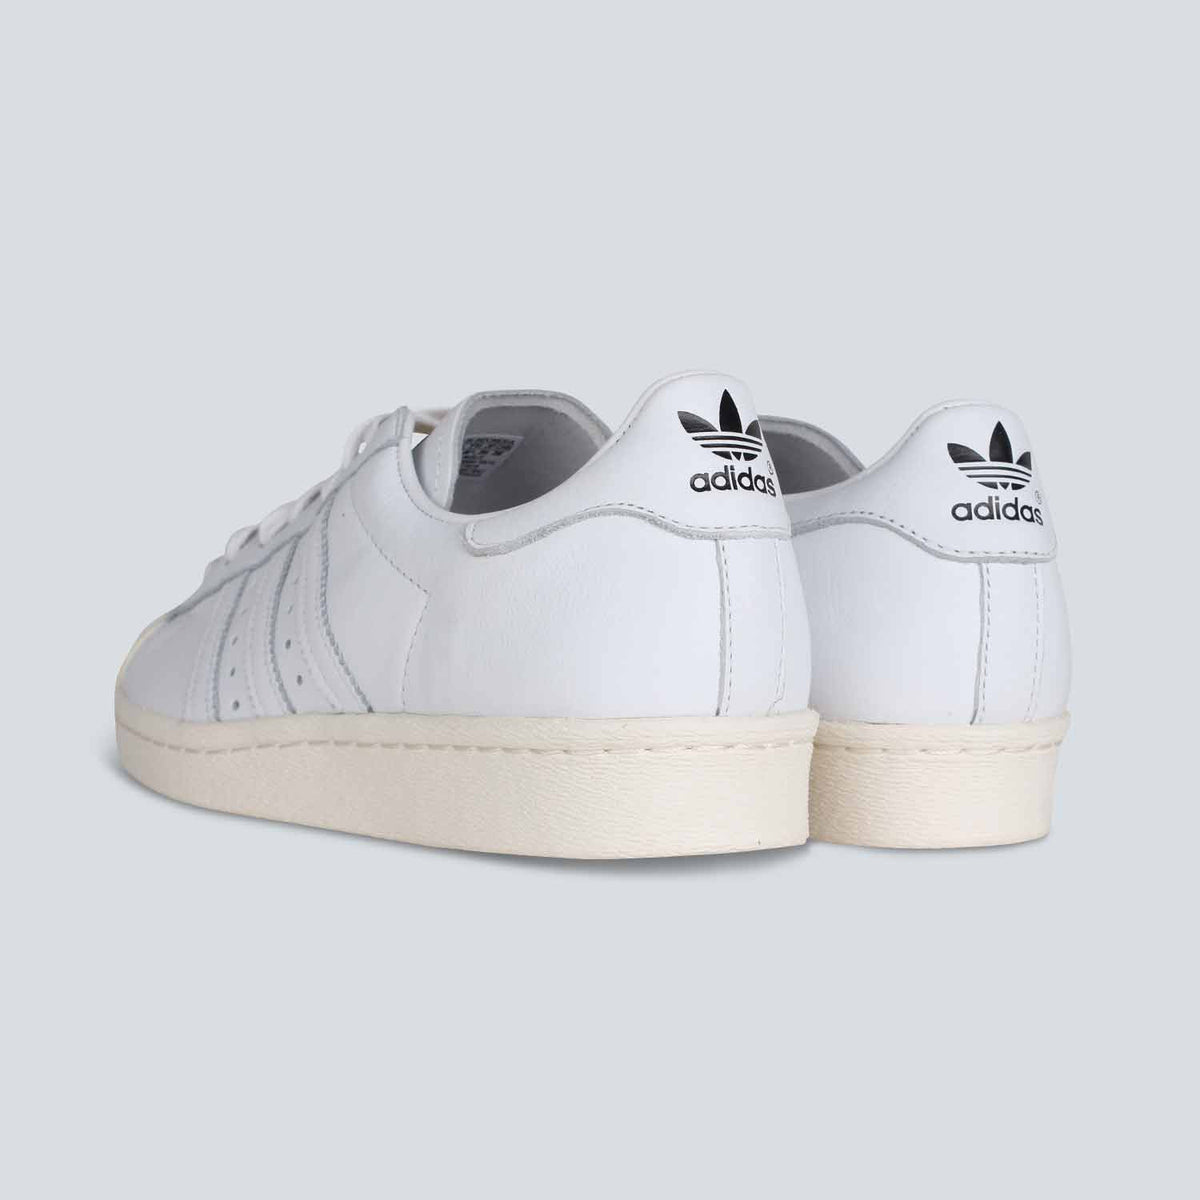 Adidas - Superstar 80's DLX - White/White/Cream White